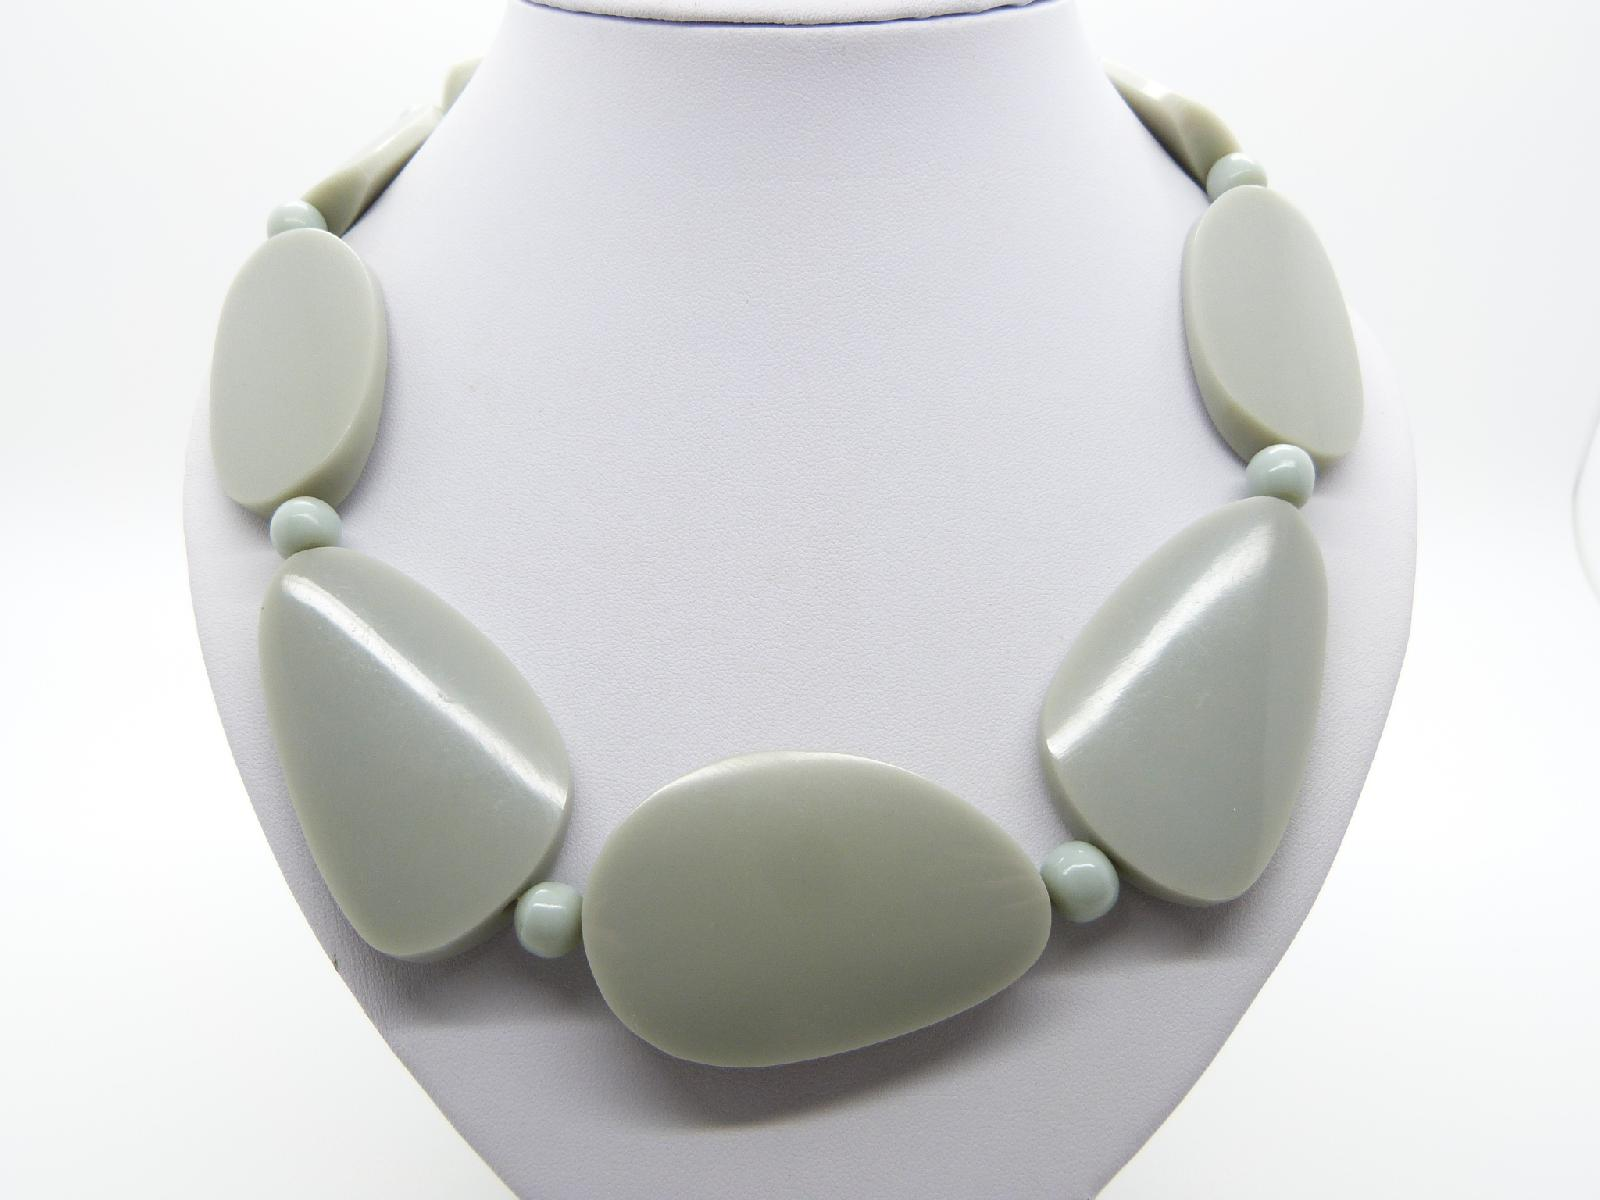 Stylish and Chic Chunky Grey Bead Acrylic Plastic Statement Necklace